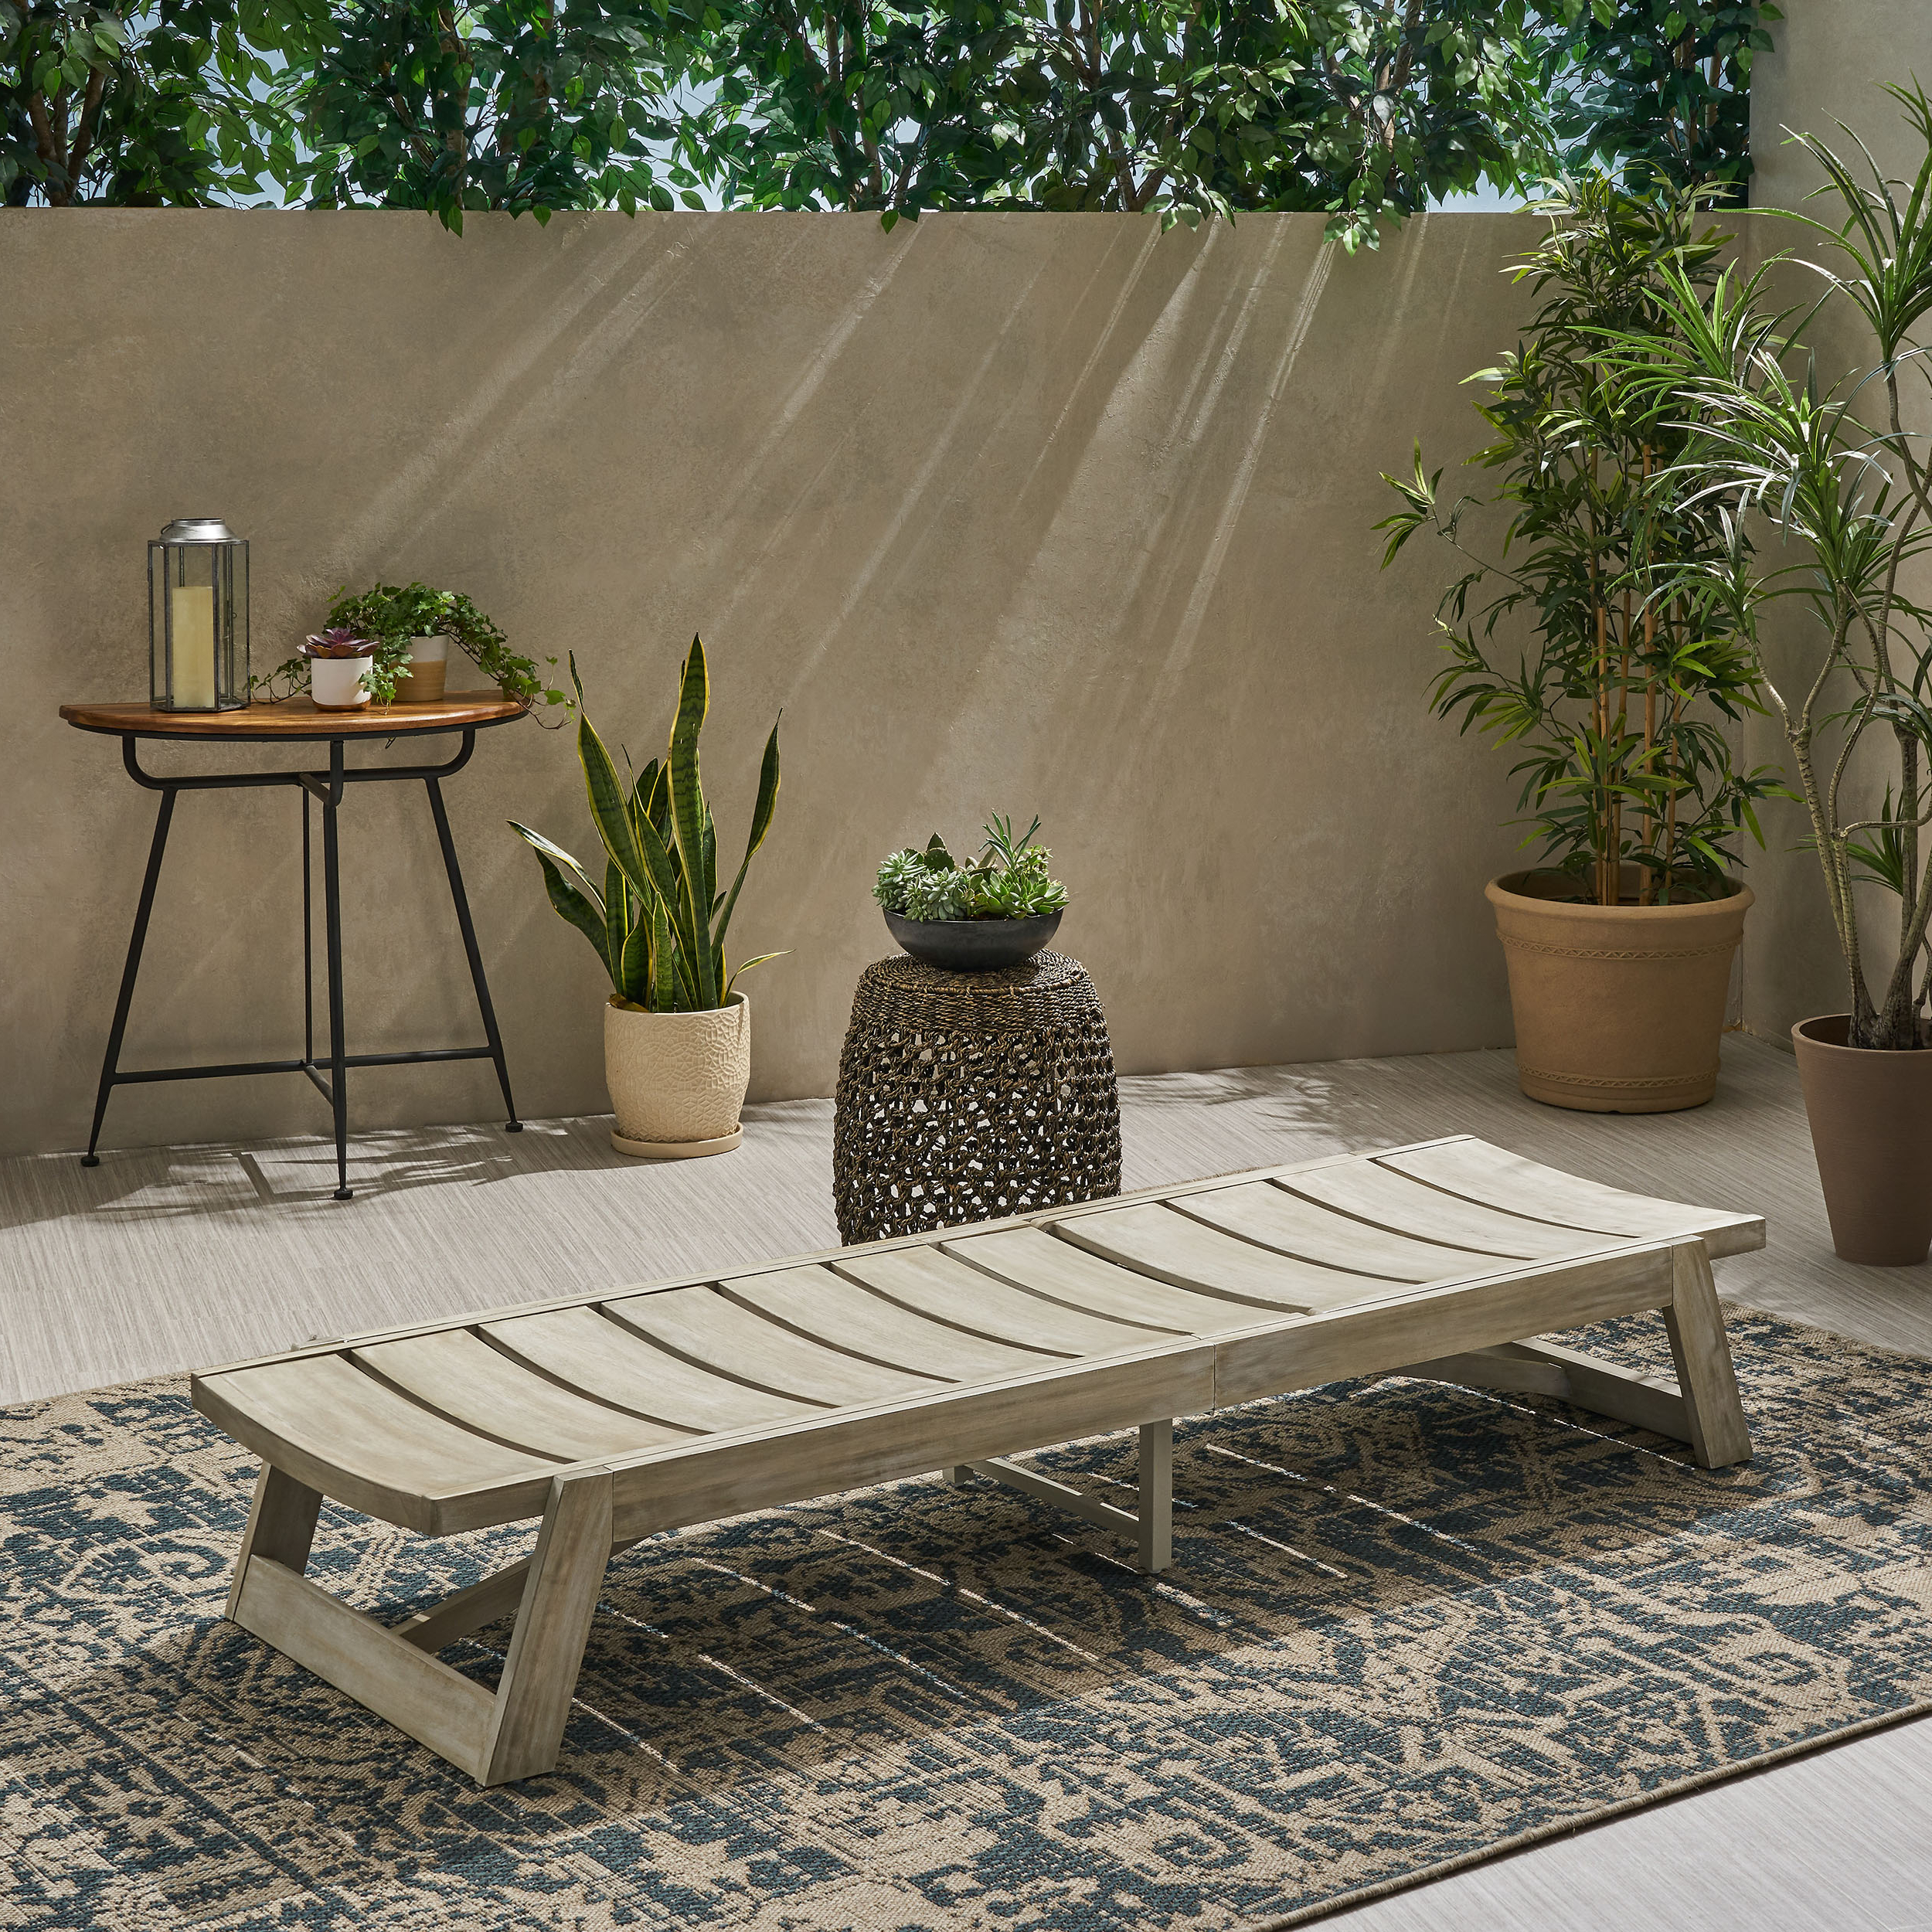 Widely Used Maki Outdoor Wood Chaise Lounges Inside Maki Outdoor Wood And Iron Chaise Lounge (View 9 of 25)